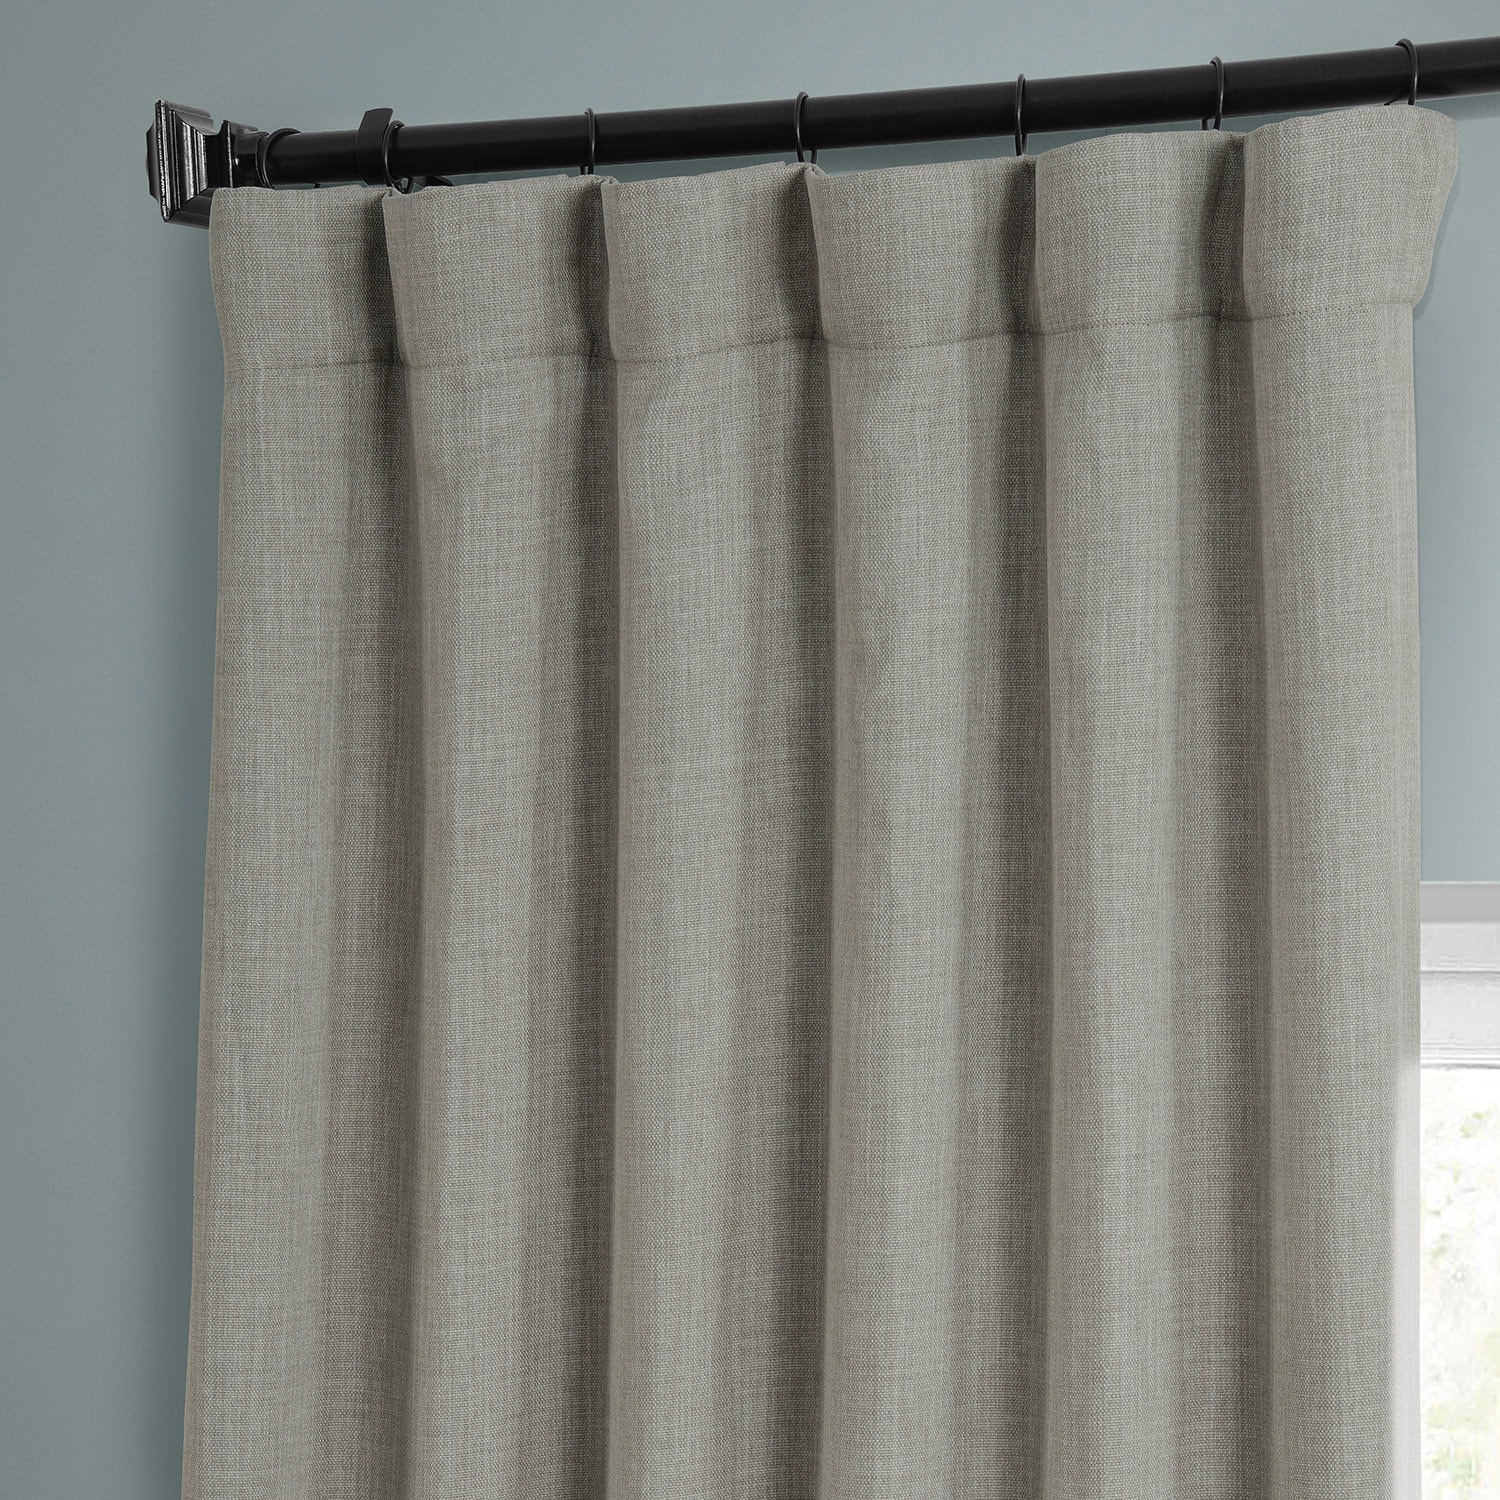 Oatmeal Faux Linen Blackout Room Darkening Curtain